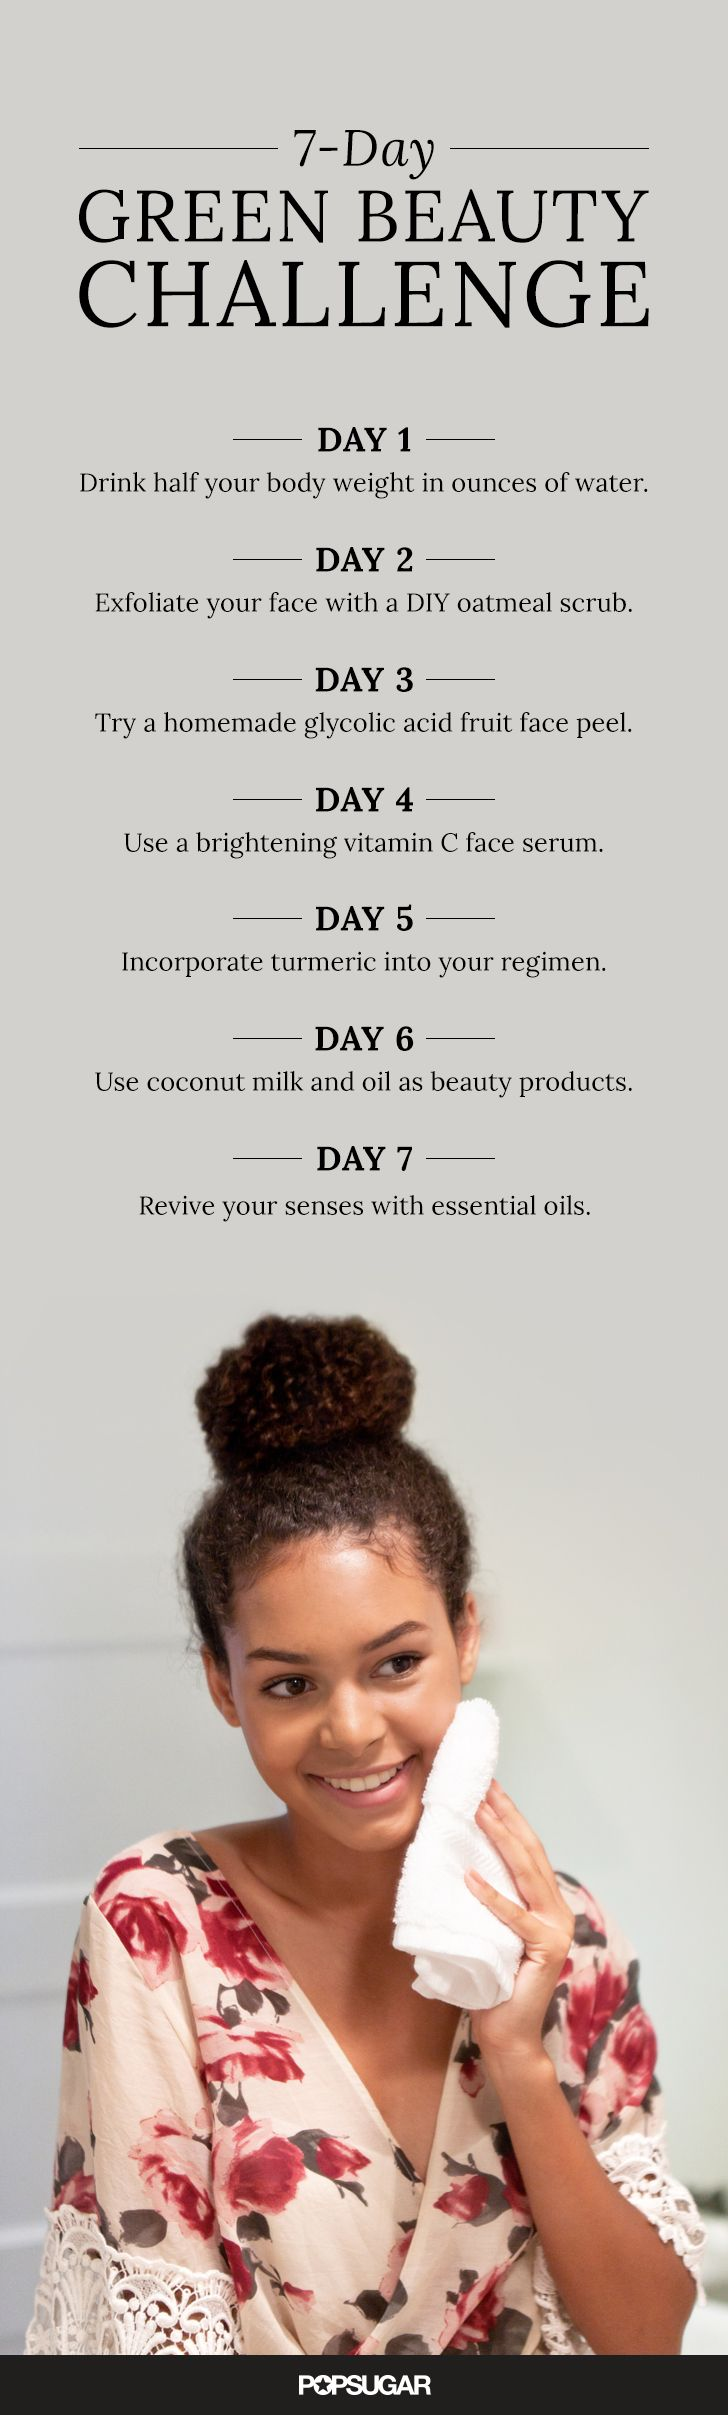 This 11-Day Green Beauty Challenge Will Make Your Skin Glow  Green